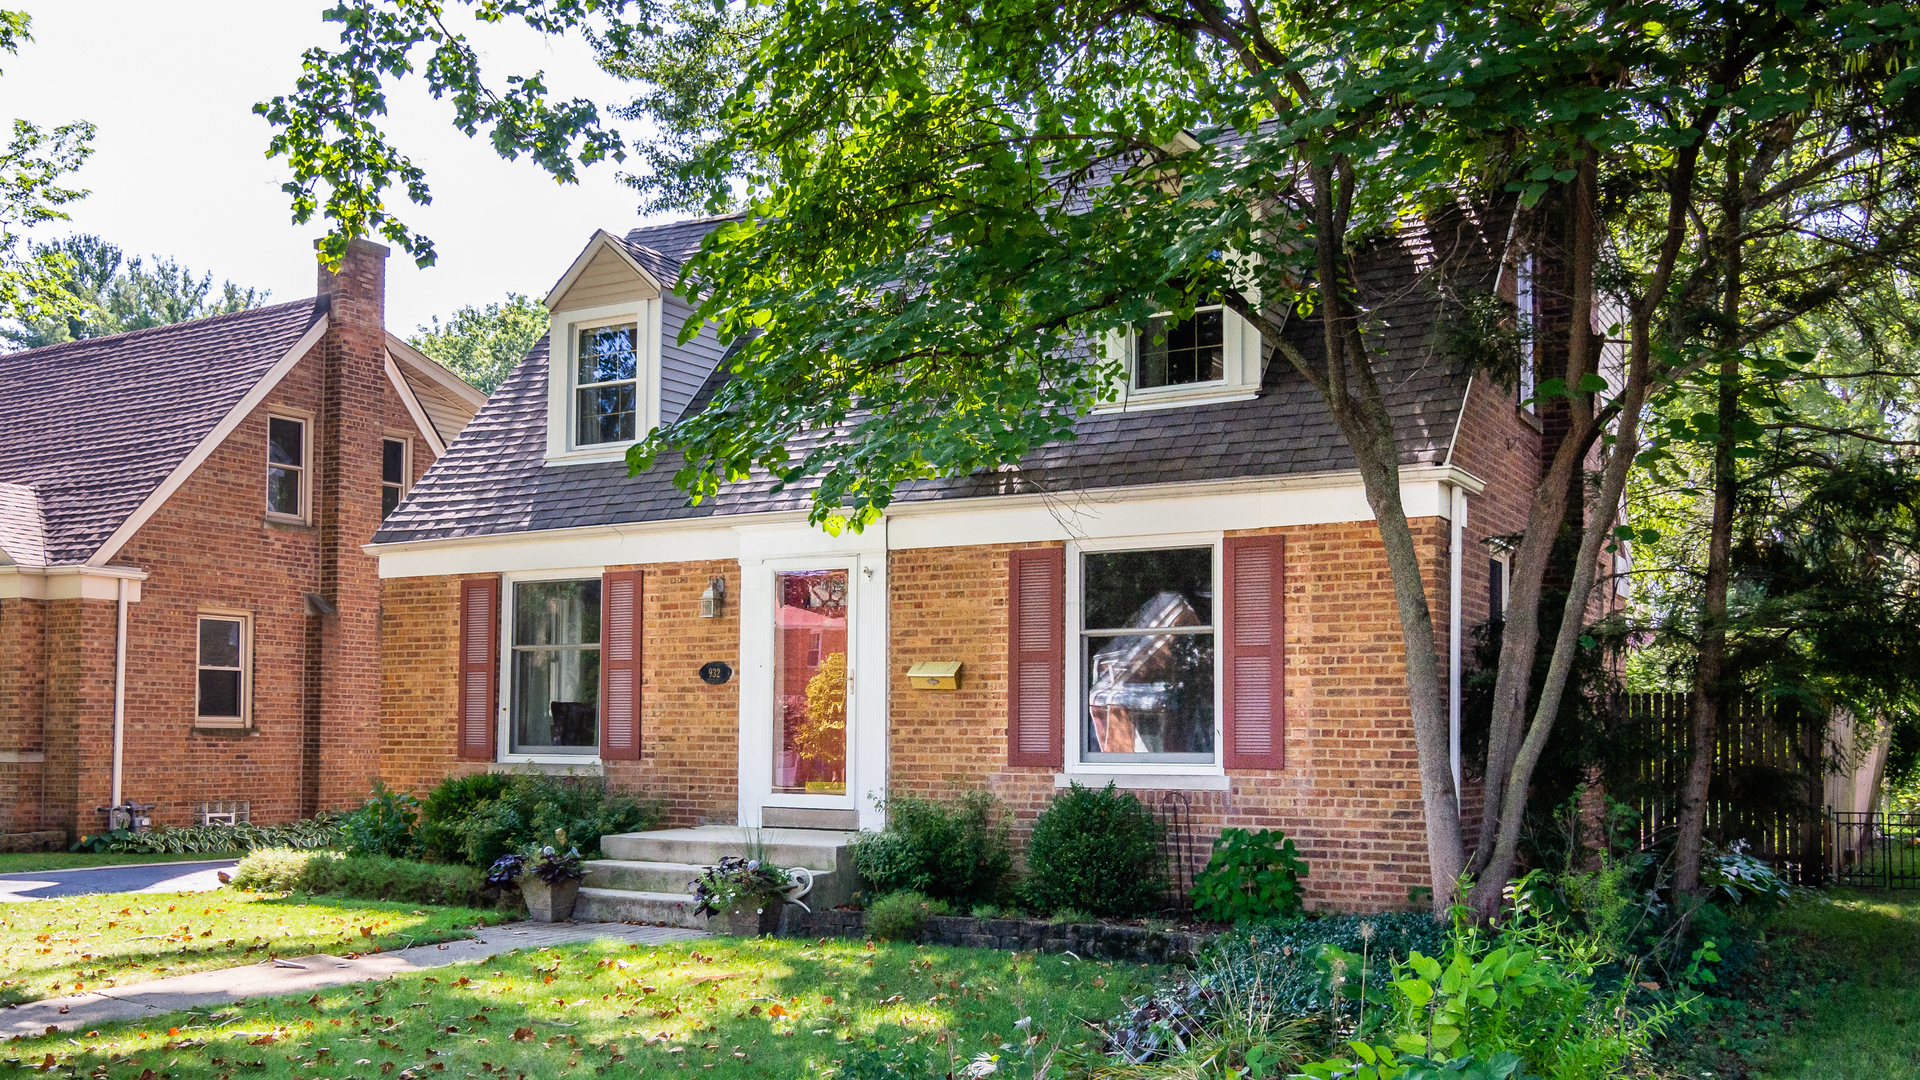 Property for sale at 932 Beach Avenue, La Grange Park,  Il 60526